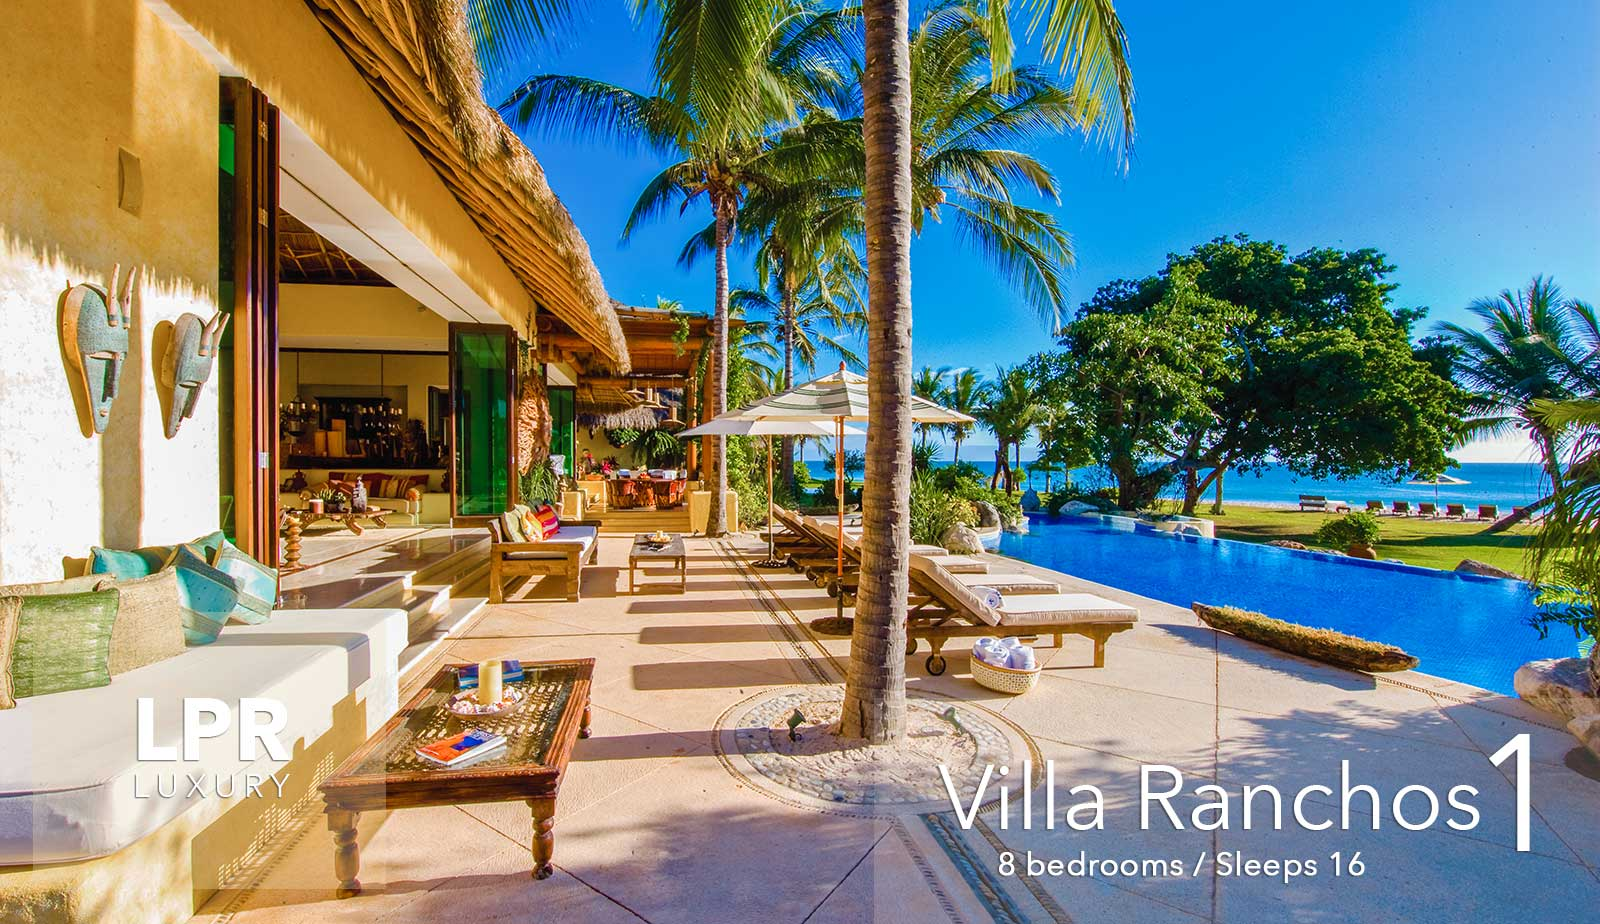 Villa Ranchos 1 - Ultra luxury vacation rental villa at the exclusive Punta Mita Resort